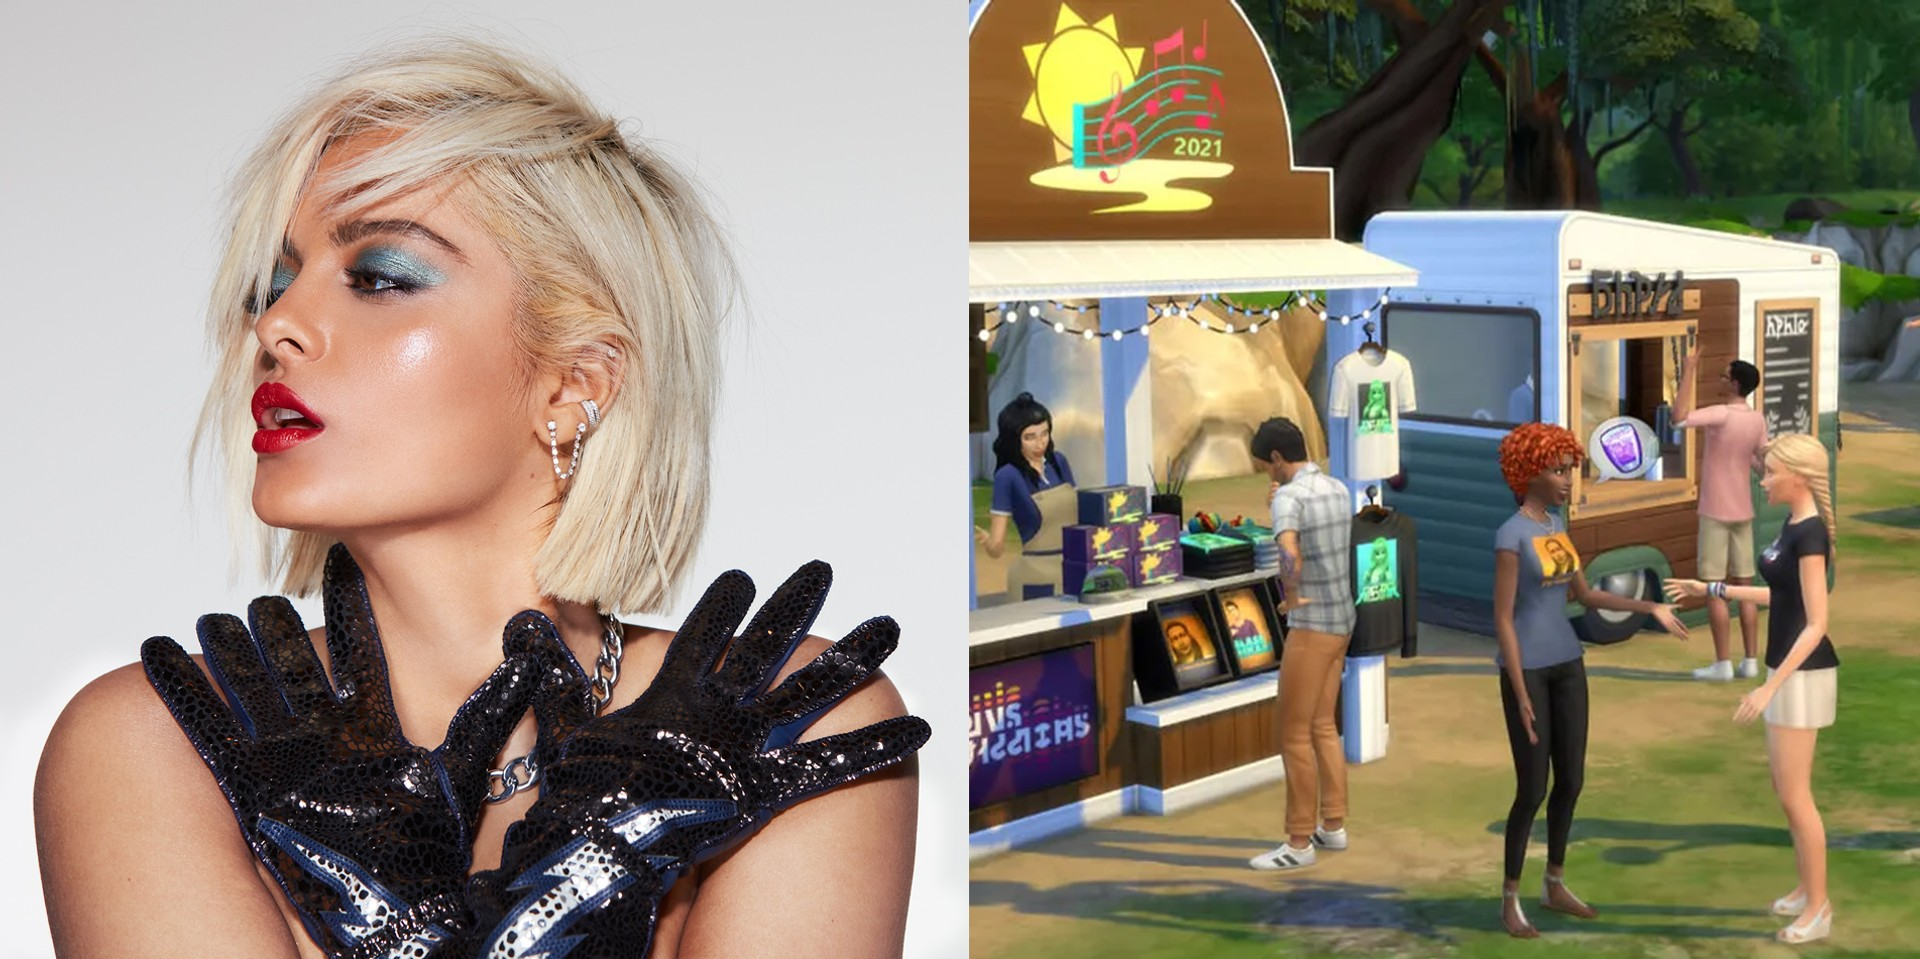 The Sims to launch its first in-game music festival 'Sims Sessions' with Bebe Rexha, Glass Animals, and Joy Oladokun